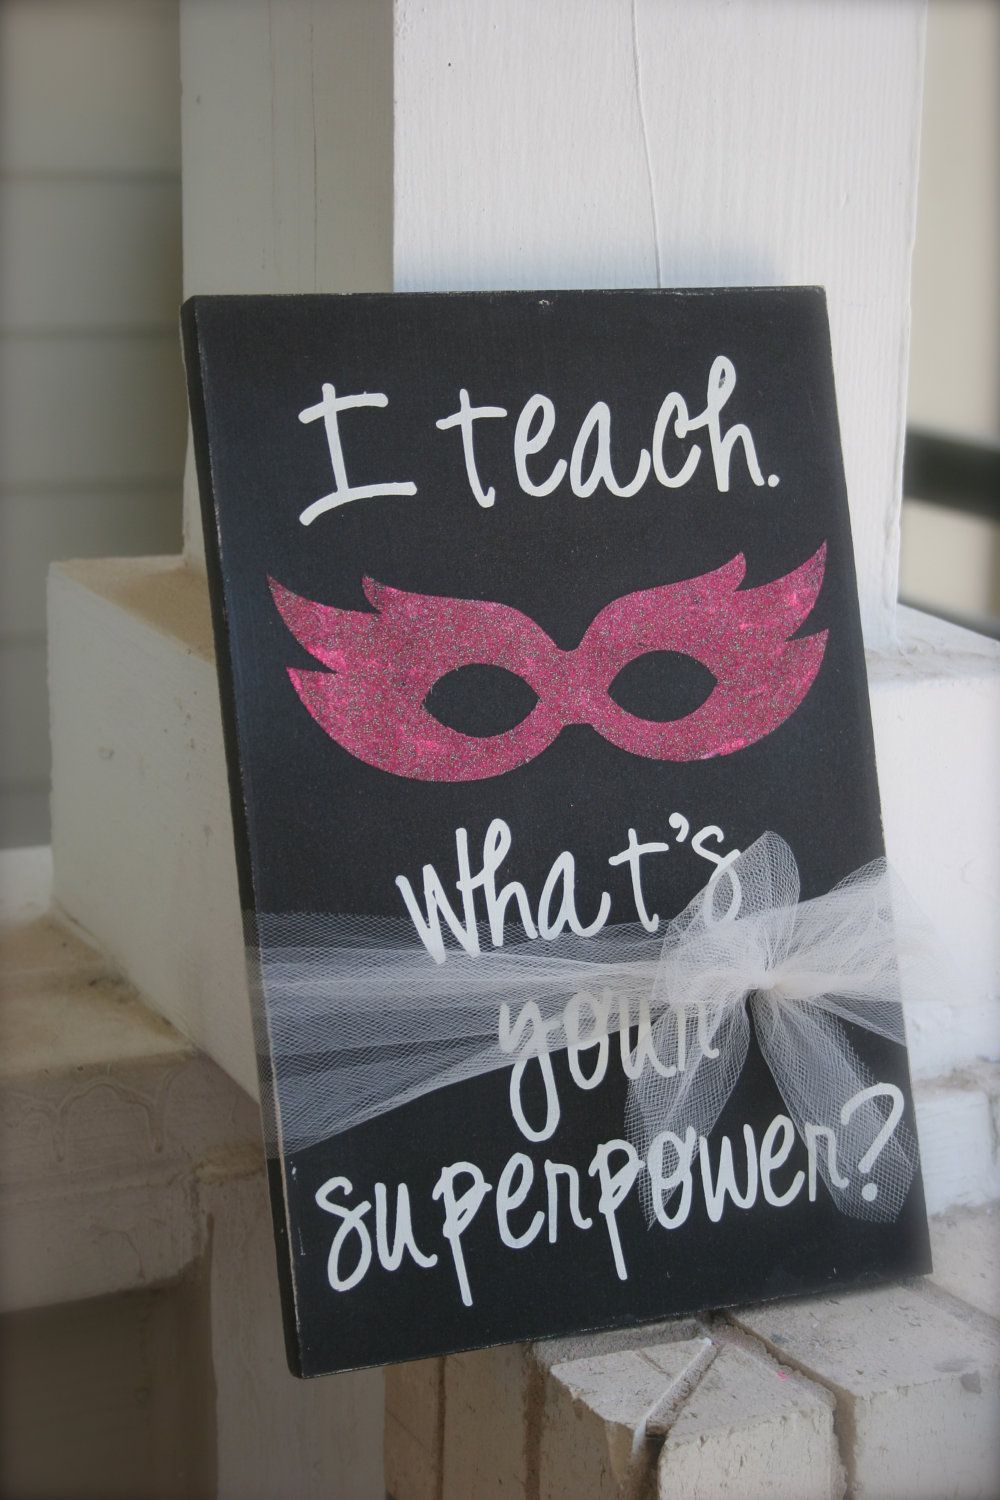 Classroom Decor Gifts ~ Classroom decor i teach what s your superpower end of